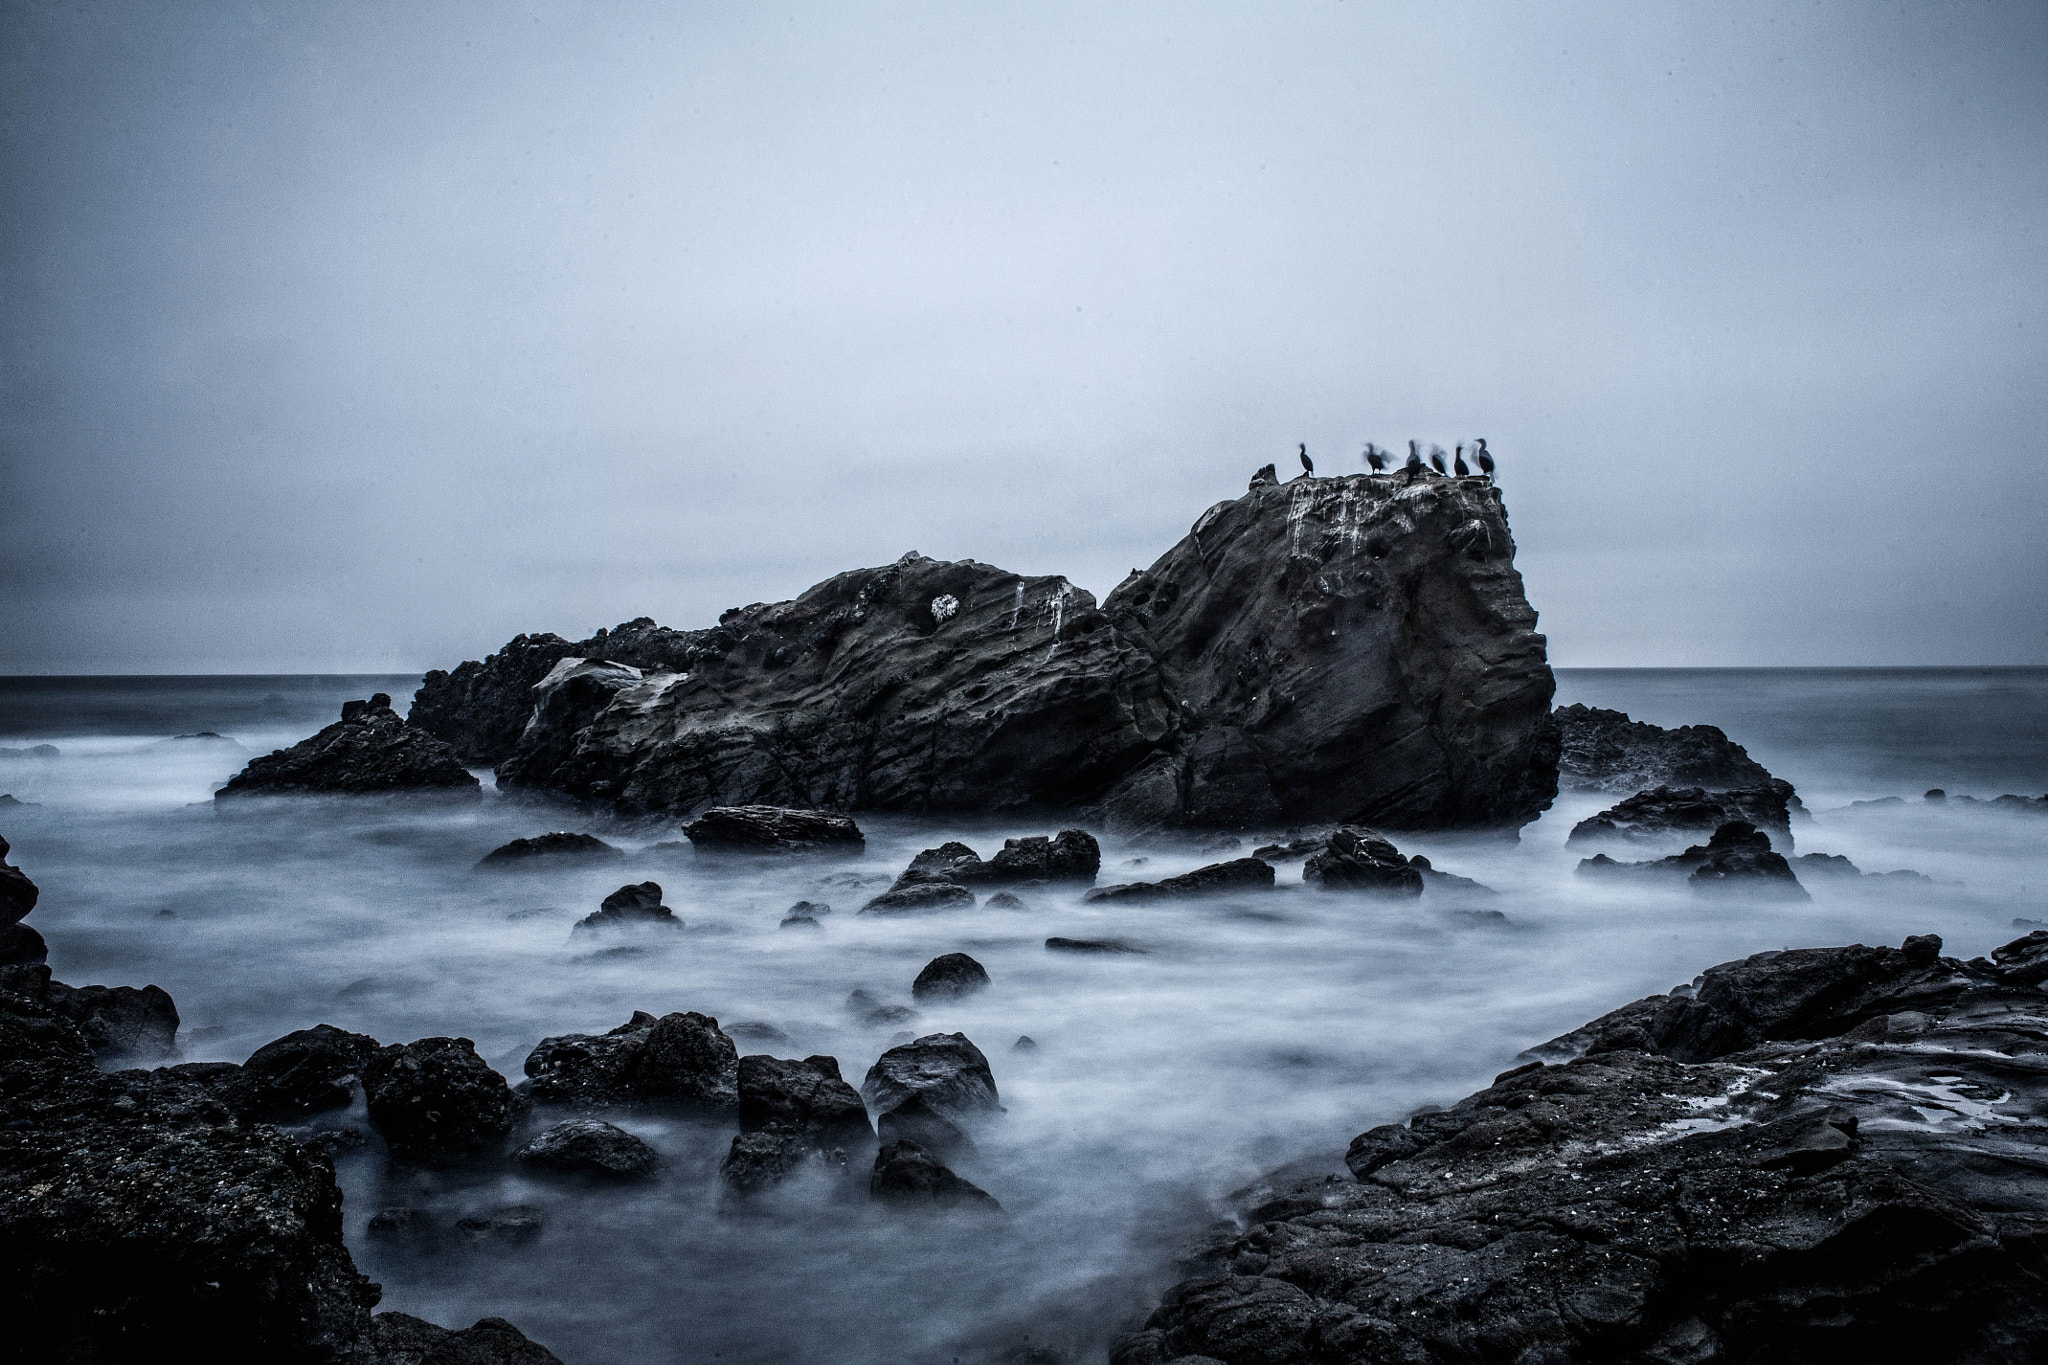 Photograph Outcast by Christopher Rusanowsky on 500px